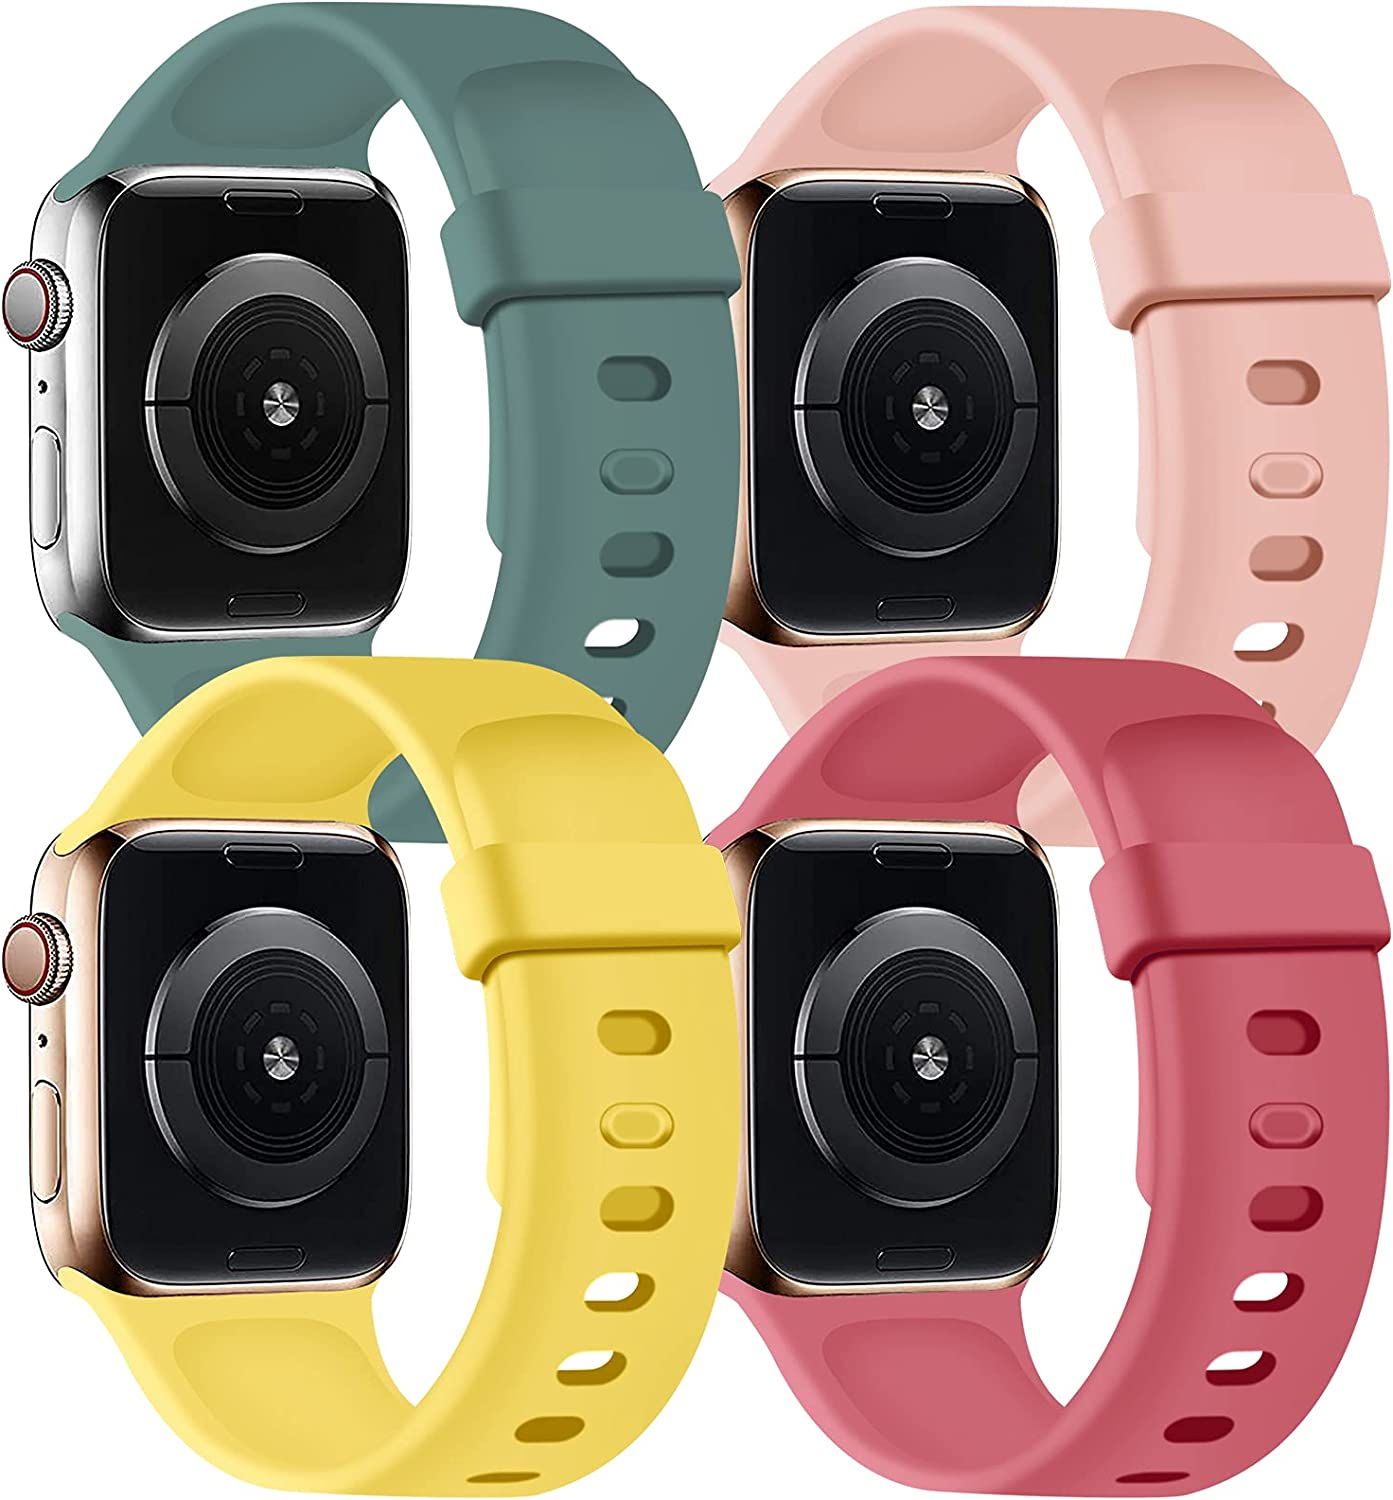 SVISVIPA Sport Bands Compatible with Apple Watch Bands 42mm 44mm, Soft Silicone Wristbands Women Men Replacement Strap for iWatch Series SE/6/5/4/3/2/1,Catus/Vimtage Rose/Pink/Yellow